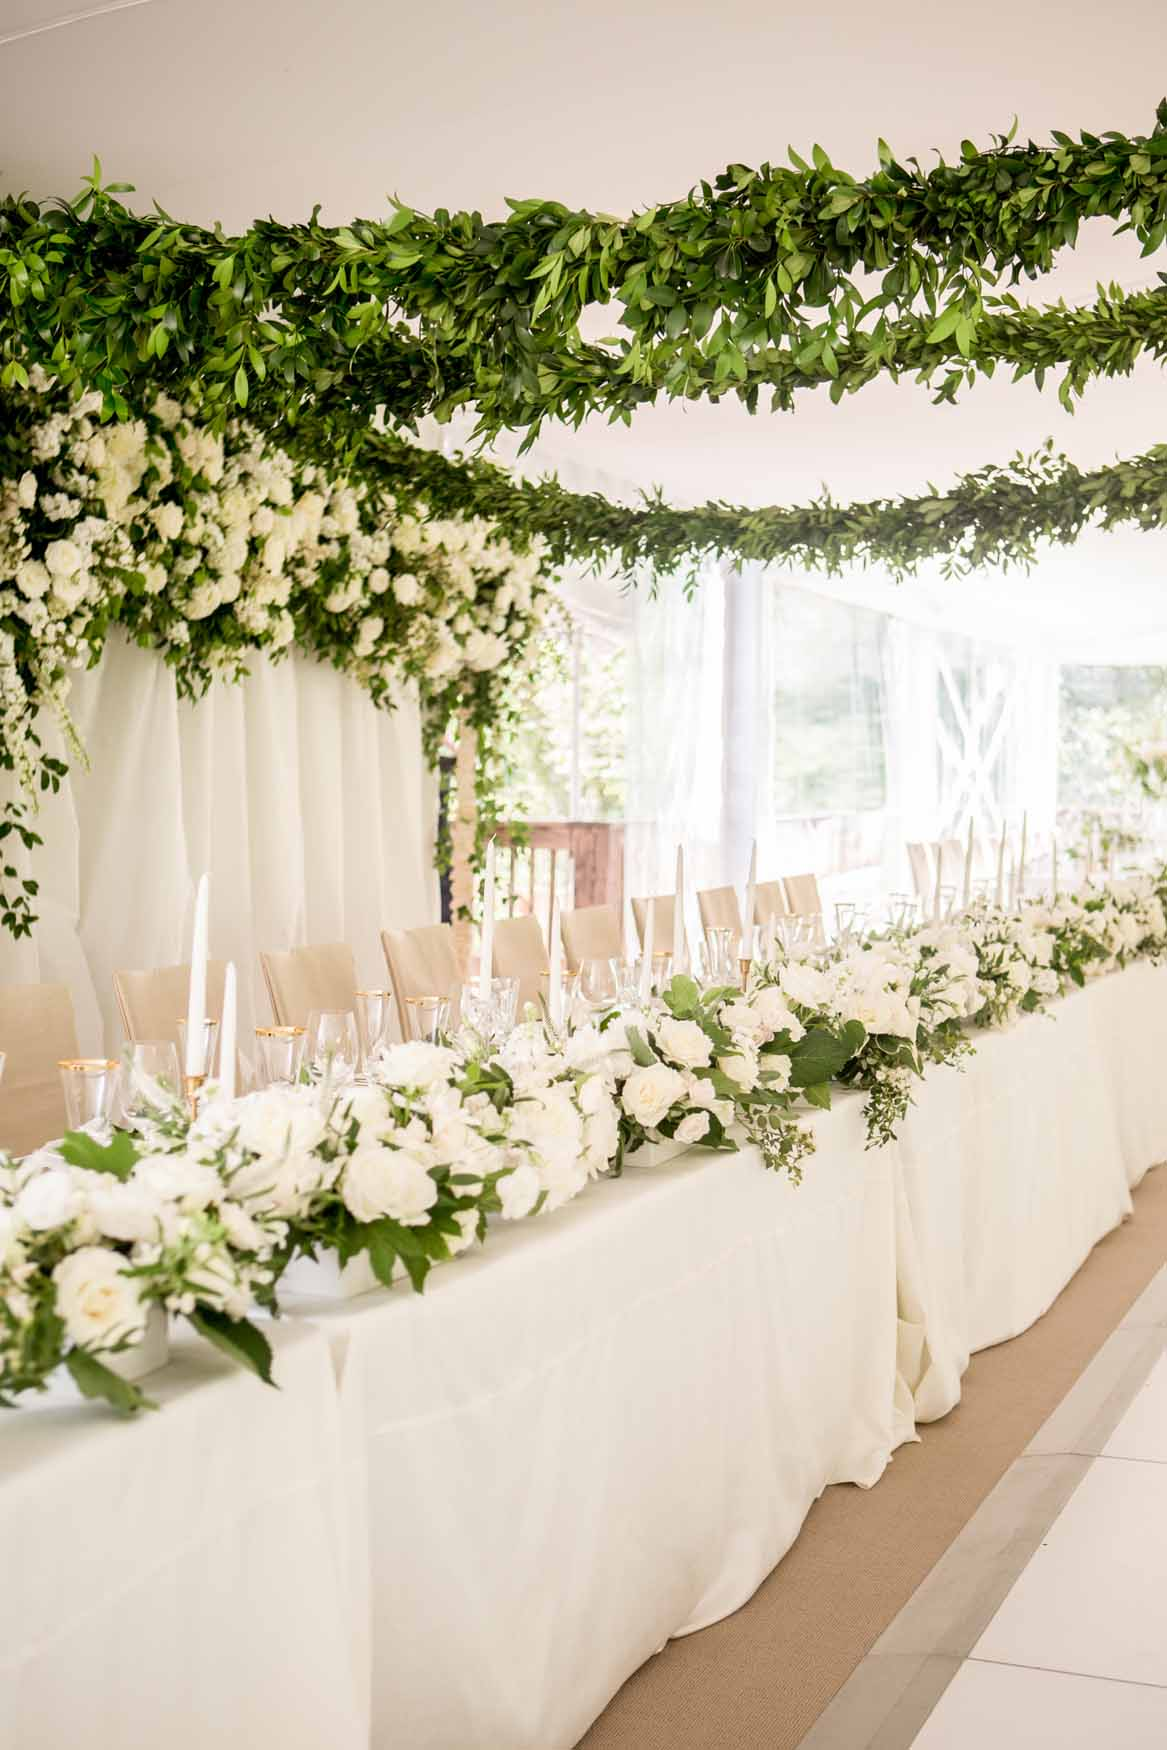 Lush flower wall as head table backdrop, with greenery garlands above - Elegant Summer Private Estate Wedding. Flora Nova Design Seattle